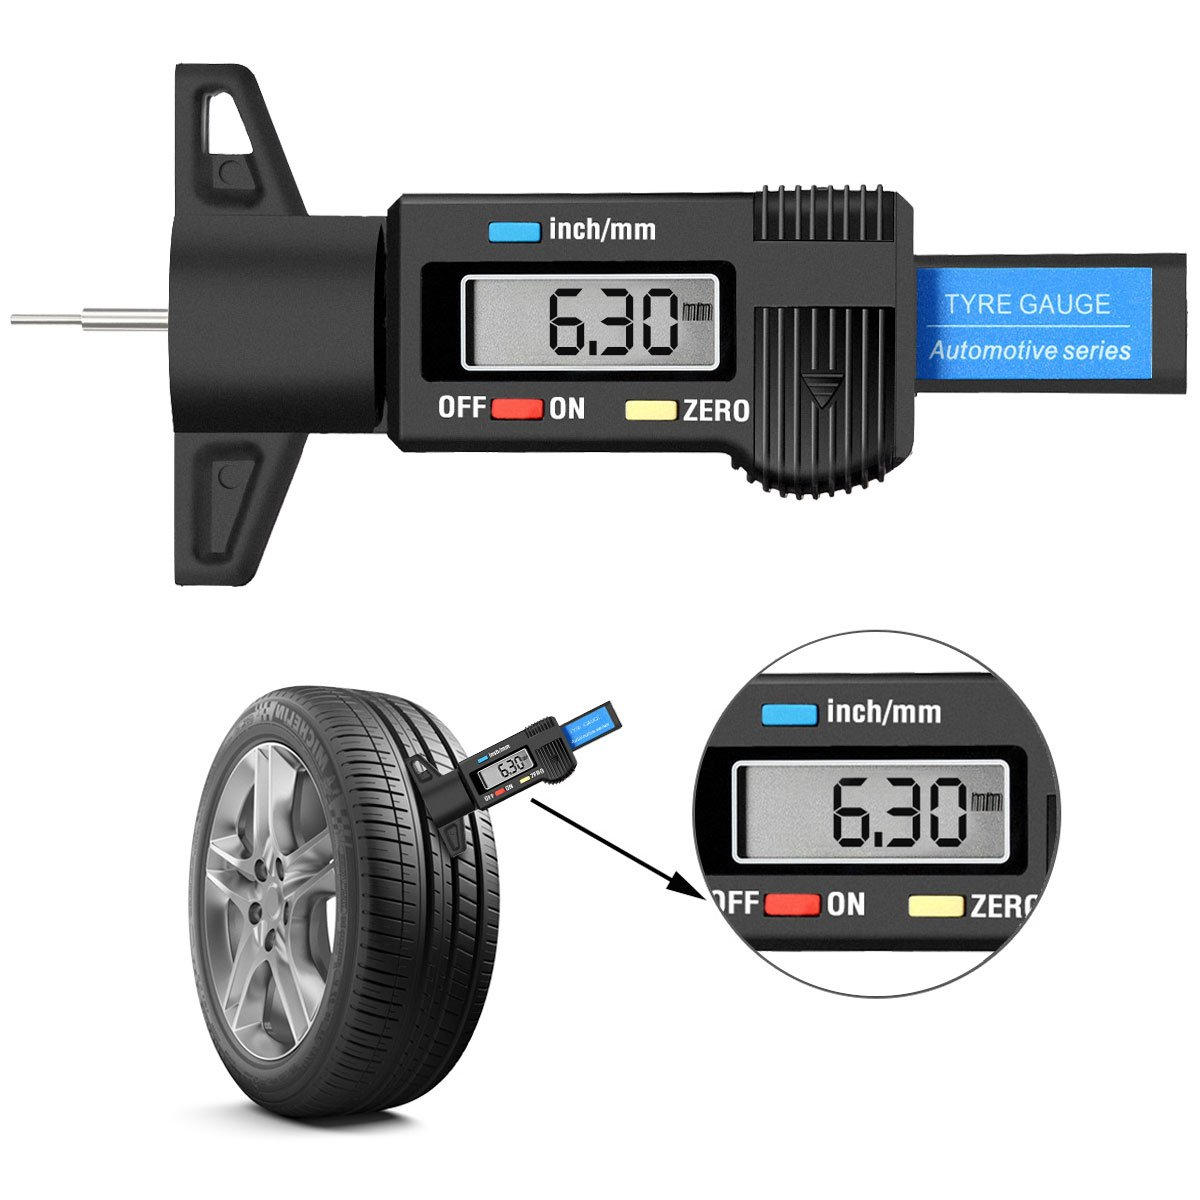 Audew Digital Tire Tread Depth Gauge - Digital Tire Gauge Meter Measurer LCD Display Tread Checker Tire Tester for Cars Trucks Vans SUV, Metric Inch Conversion 0-25.4mm